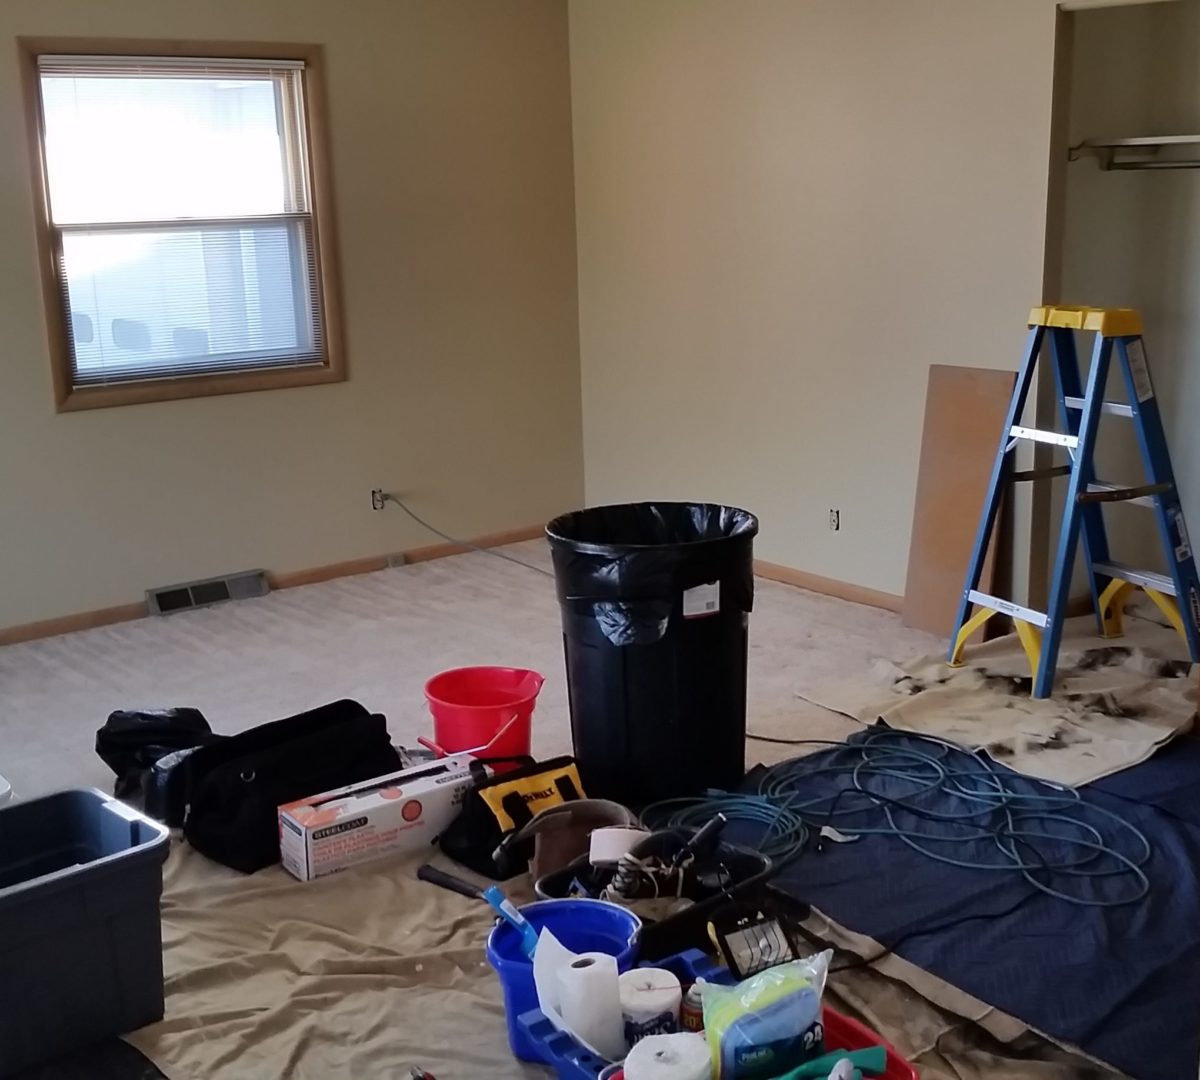 Photo of room prior to cleaning.